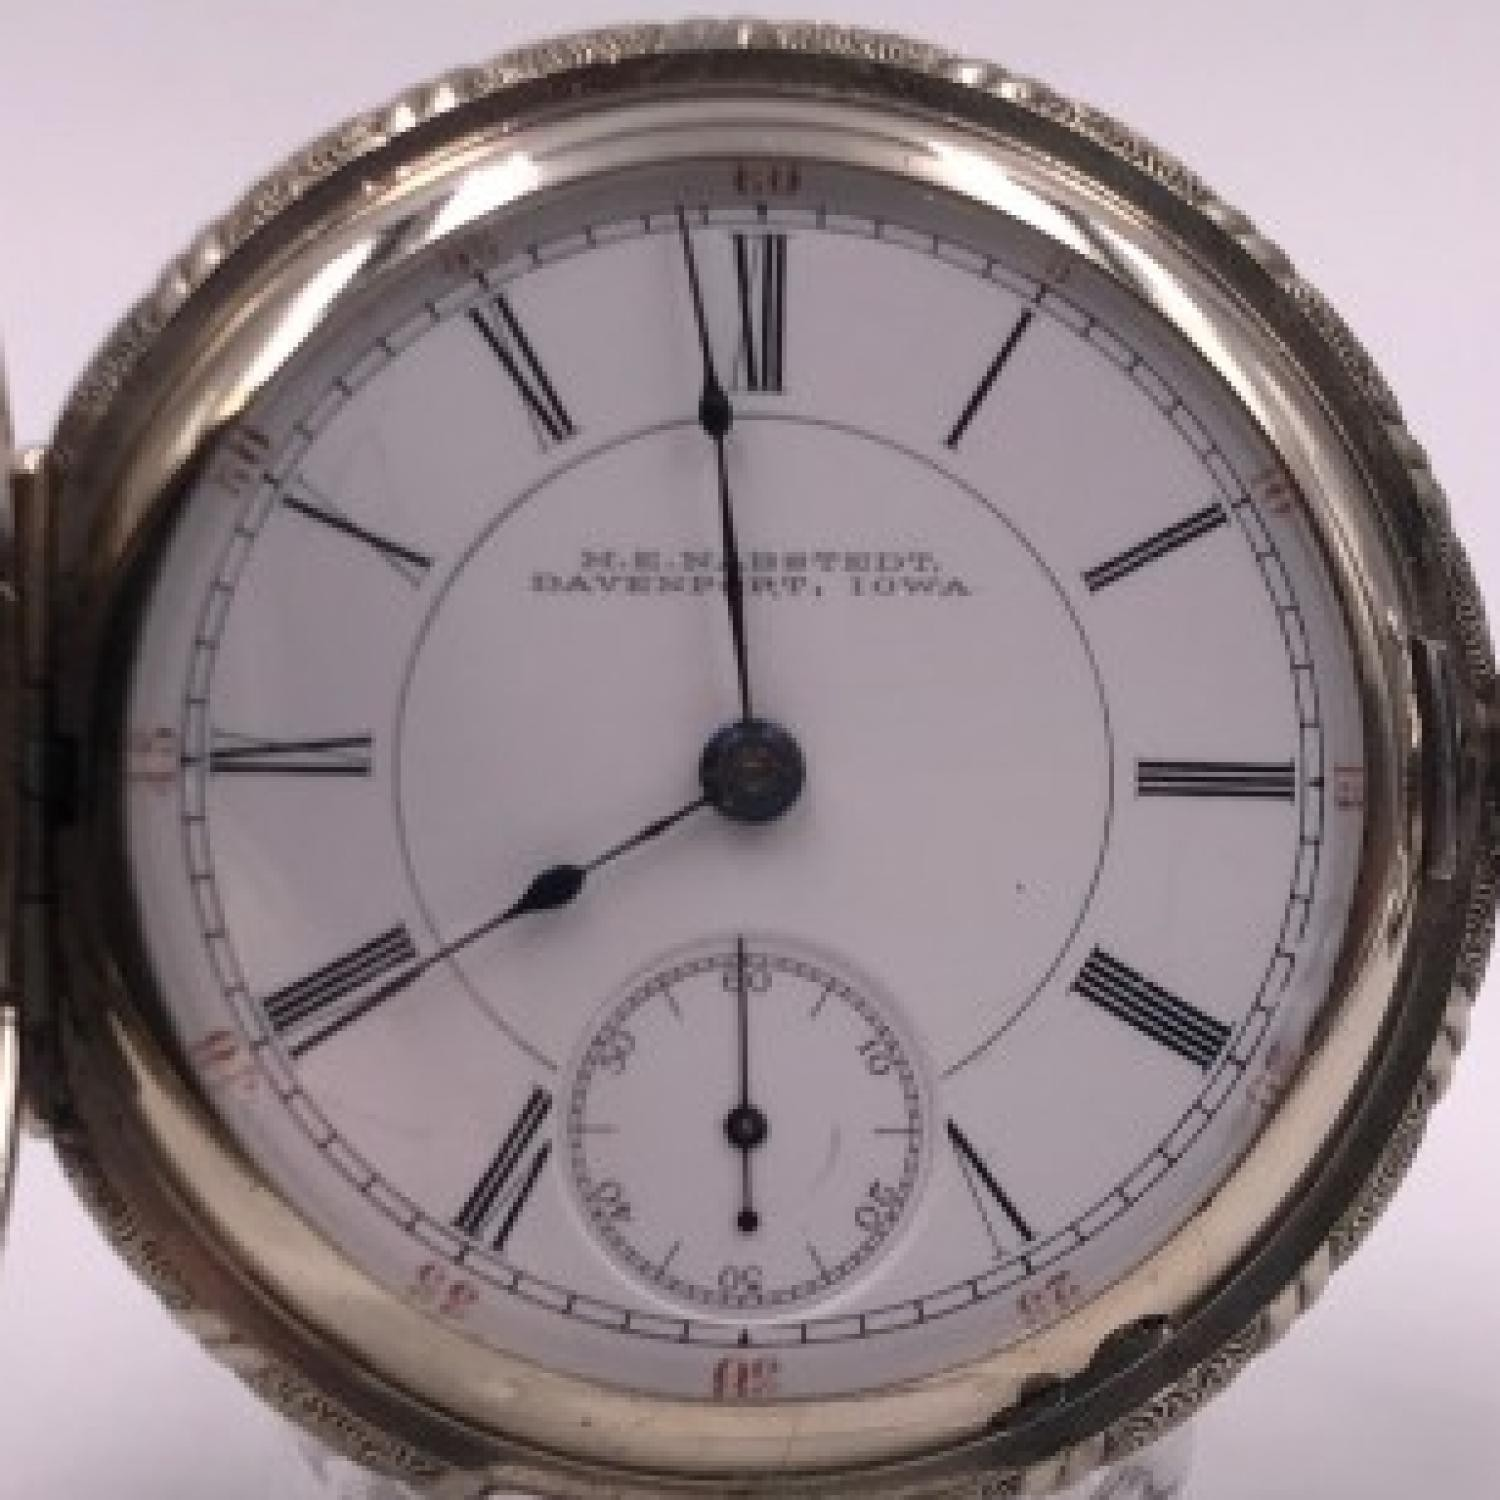 Image of Rockford 83 #324590 Dial